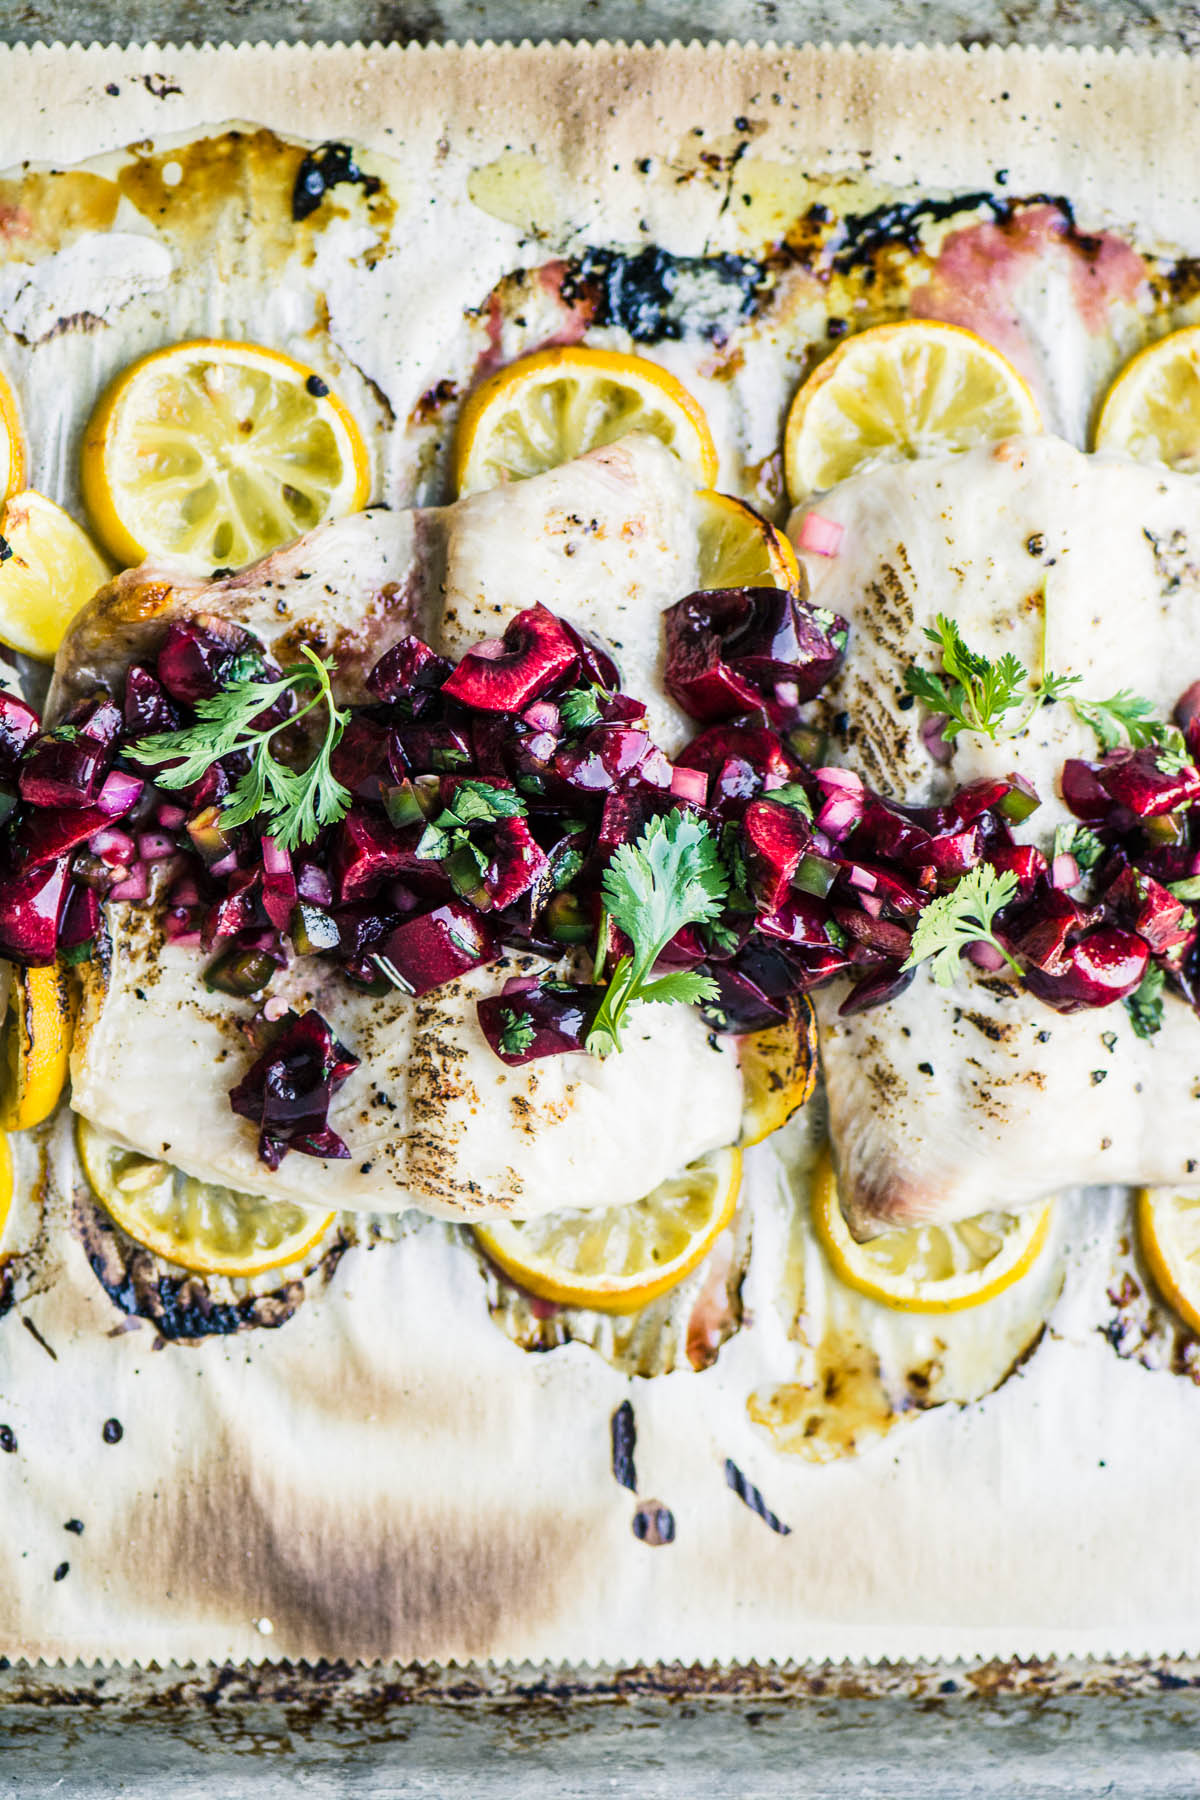 whitefish fillets topped with cherry salsa on a baking sheet with lemons